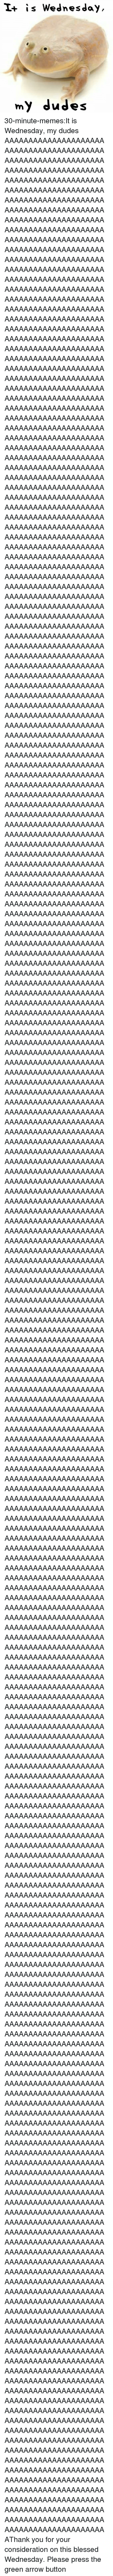 consideration: I+ is Wednesday  my dudes 30-minute-memes:It is Wednesday, my dudes AAAAAAAAAAAAAAAAAAAAAAAAAAAAAAAAAAAAAAAAAAAAAAAAAAAAAAAAAAAAAAAAAAAAAAAAAAAAAAAAAAAAAAAAAAAAAAAAAAAAAAAAAAAAAAAAAAAAAAAAAAAAAAAAAAAAAAAAAAAAAAAAAAAAAAAAAAAAAAAAAAAAAAAAAAAAAAAAAAAAAAAAAAAAAAAAAAAAAAAAAAAAAAAAAAAAAAAAAAAAAAAAAAAAAAAAAAAAAAAAAAAAAAAAAAAAAAAAAAAAAAAAAAAAAAAAAAAAAAAAAAAAAAAAAAAAAAAAAAAAAAAAAAAAAAAAAAAAAAAAAAAAAAAAAAAAAAAAAAAAAAAAAAAAAAAAAAAAAAAAAAAAAAAAAAAAAAAAAAAAAAAAAAAAAAAAAAAAAAAAAAAAAAAAAAAAAAAAAAAAAAAAAAAAAAAAAAAAAAAAAAAAAAAAAAAAAAAAAAAAAAAAAAAAAAAAAAAAAAAAAAAAAAAAAAAAAAAAAAAAAAAAAAAAAAAAAAAAAAAAAAAAAAAAAAAAAAAAAAAAAAAAAAAAAAAAAAAAAAAAAAAAAAAAAAAAAAAAAAAAAAAAAAAAAAAAAAAAAAAAAAAAAAAAAAAAAAAAAAAAAAAAAAAAAAAAAAAAAAAAAAAAAAAAAAAAAAAAAAAAAAAAAAAAAAAAAAAAAAAAAAAAAAAAAAAAAAAAAAAAAAAAAAAAAAAAAAAAAAAAAAAAAAAAAAAAAAAAAAAAAAAAAAAAAAAAAAAAAAAAAAAAAAAAAAAAAAAAAAAAAAAAAAAAAAAAAAAAAAAAAAAAAAAAAAAAAAAAAAAAAAAAAAAAAAAAAAAAAAAAAAAAAAAAAAAAAAAAAAAAAAAAAAAAAAAAAAAAAAAAAAAAAAAAAAAAAAAAAAAAAAAAAAAAAAAAAAAAAAAAAAAAAAAAAAAAAAAAAAAAAAAAAAAAAAAAAAAAAAAAAAAAAAAAAAAAAAAAAAAAAAAAAAAAAAAAAAAAAAAAAAAAAAAAAAAAAAAAAAAAAAAAAAAAAAAAAAAAAAAAAAAAAAAAAAAAAAAAAAAAAAAAAAAAAAAAAAAAAAAAAAAAAAAAAAAAAAAAAAAAAAAAAAAAAAAAAAAAAAAAAAAAAAAAAAAAAAAAAAAAAAAAAAAAAAAAAAAAAAAAAAAAAAAAAAAAAAAAAAAAAAAAAAAAAAAAAAAAAAAAAAAAAAAAAAAAAAAAAAAAAAAAAAAAAAAAAAAAAAAAAAAAAAAAAAAAAAAAAAAAAAAAAAAAAAAAAAAAAAAAAAAAAAAAAAAAAAAAAAAAAAAAAAAAAAAAAAAAAAAAAAAAAAAAAAAAAAAAAAAAAAAAAAAAAAAAAAAAAAAAAAAAAAAAAAAAAAAAAAAAAAAAAAAAAAAAAAAAAAAAAAAAAAAAAAAAAAAAAAAAAAAAAAAAAAAAAAAAAAAAAAAAAAAAAAAAAAAAAAAAAAAAAAAAAAAAAAAAAAAAAAAAAAAAAAAAAAAAAAAAAAAAAAAAAAAAAAAAAAAAAAAAAAAAAAAAAAAAAAAAAAAAAAAAAAAAAAAAAAAAAAAAAAAAAAAAAAAAAAAAAAAAAAAAAAAAAAAAAAAAAAAAAAAAAAAAAAAAAAAAAAAAAAAAAAAAAAAAAAAAAAAAAAAAAAAAAAAAAAAAAAAAAAAAAAAAAAAAAAAAAAAAAAAAAAAAAAAAAAAAAAAAAAAAAAAAAAAAAAAAAAAAAAAAAAAAAAAAAAAAAAAAAAAAAAAAAAAAAAAAAAAAAAAAAAAAAAAAAAAAAAAAAAAAAAAAAAAAAAAAAAAAAAAAAAAAAAAAAAAAAAAAAAAAAAAAAAAAAAAAAAAAAAAAAAAAAAAAAAAAAAAAAAAAAAAAAAAAAAAAAAAAAAAAAAAAAAAAAAAAAAAAAAAAAAAAAAAAA